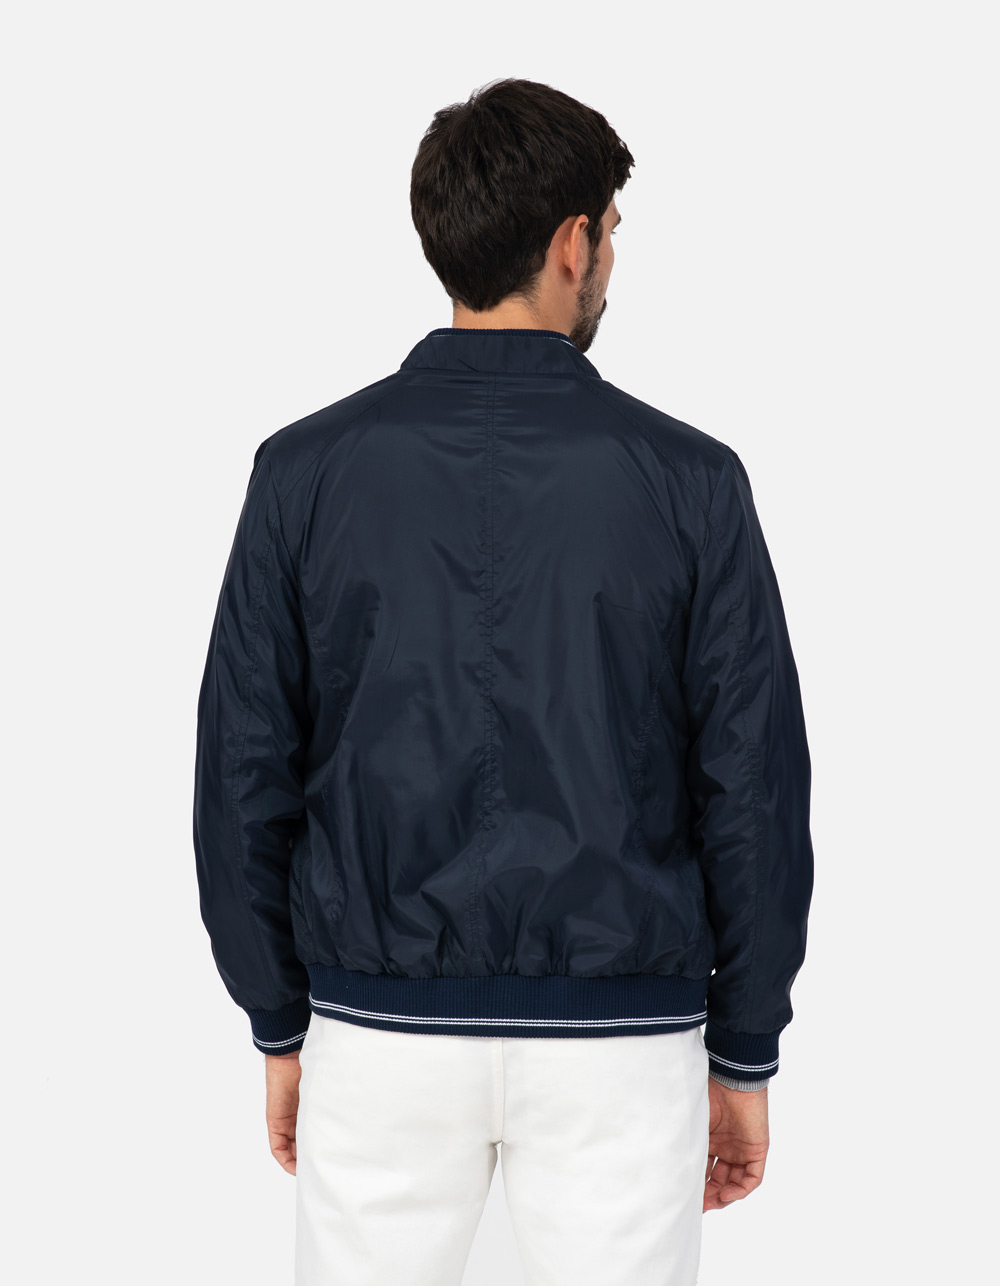 Navy sport jacket - Backside